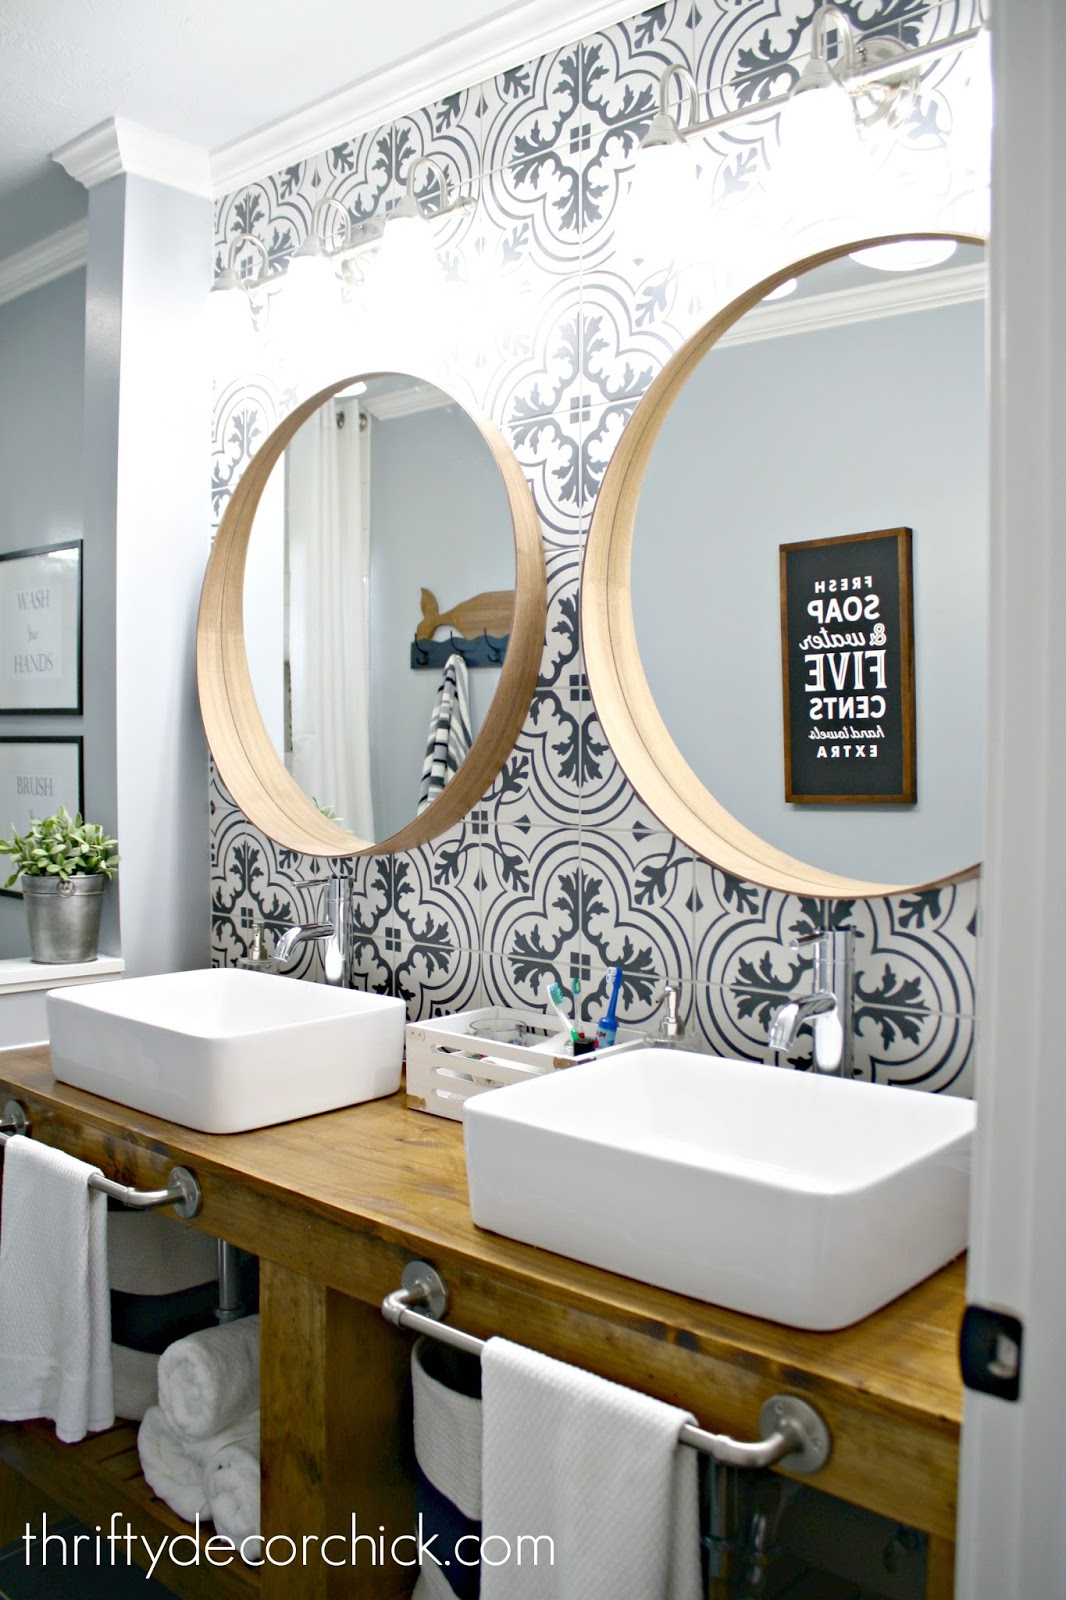 Fancy Bathroom makeover with wood vanity vessel sinks and tile wall